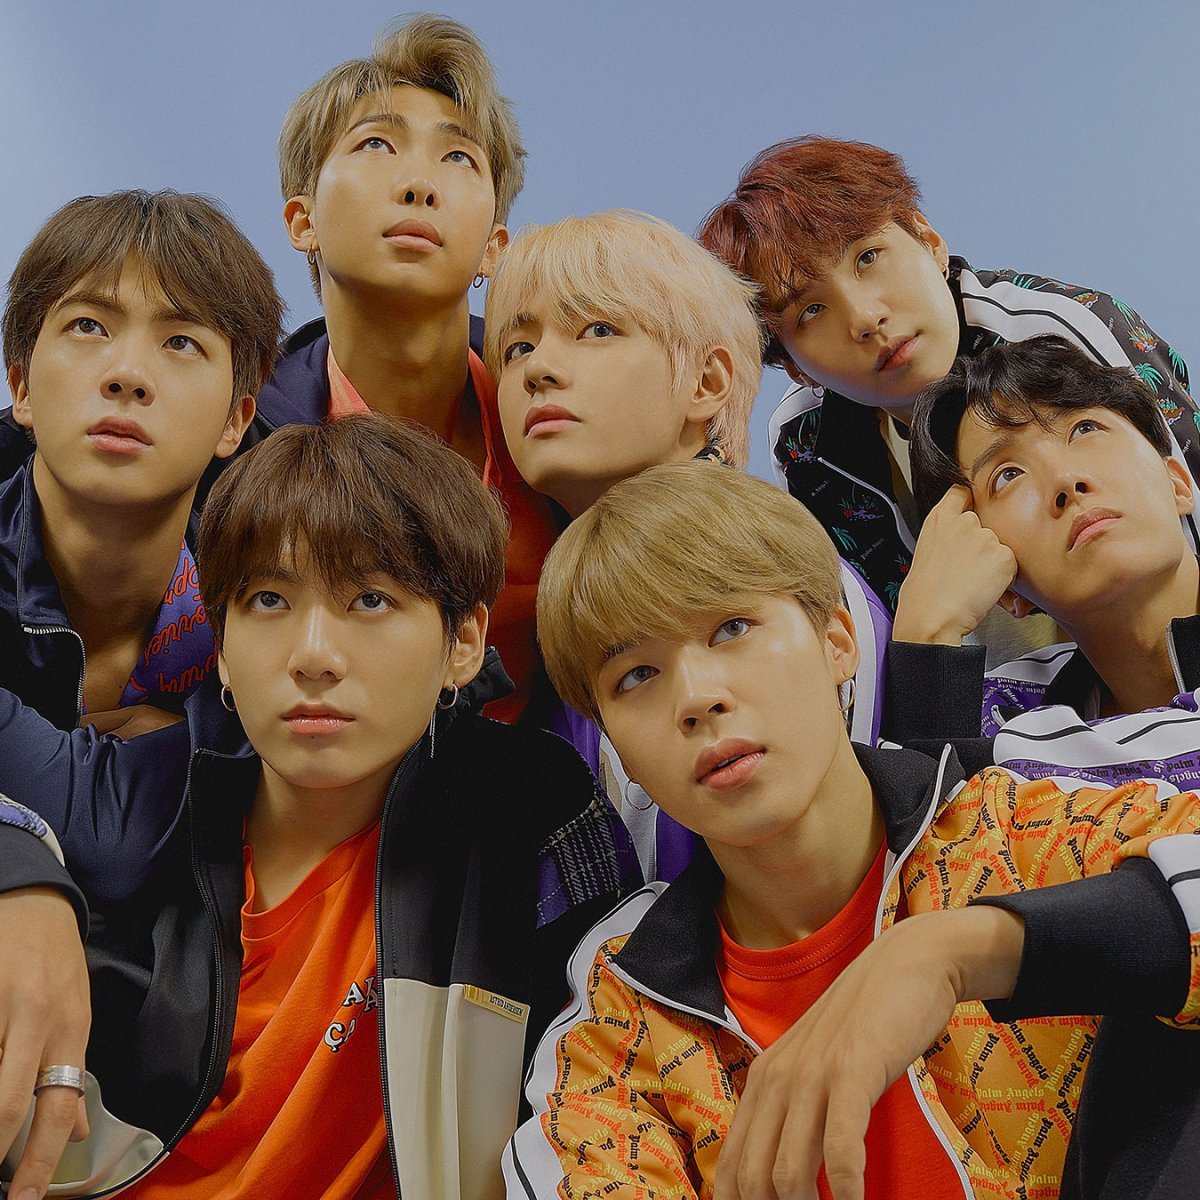 """#BTS Named One Of """"100 Most Influential People Of 2019"""" By TIME Magazine #TIME100 https://www.soompi.com/article/1318185wpp/bts-named-one-of-100-most-influential-people-of-2019-by-time-magazine…"""